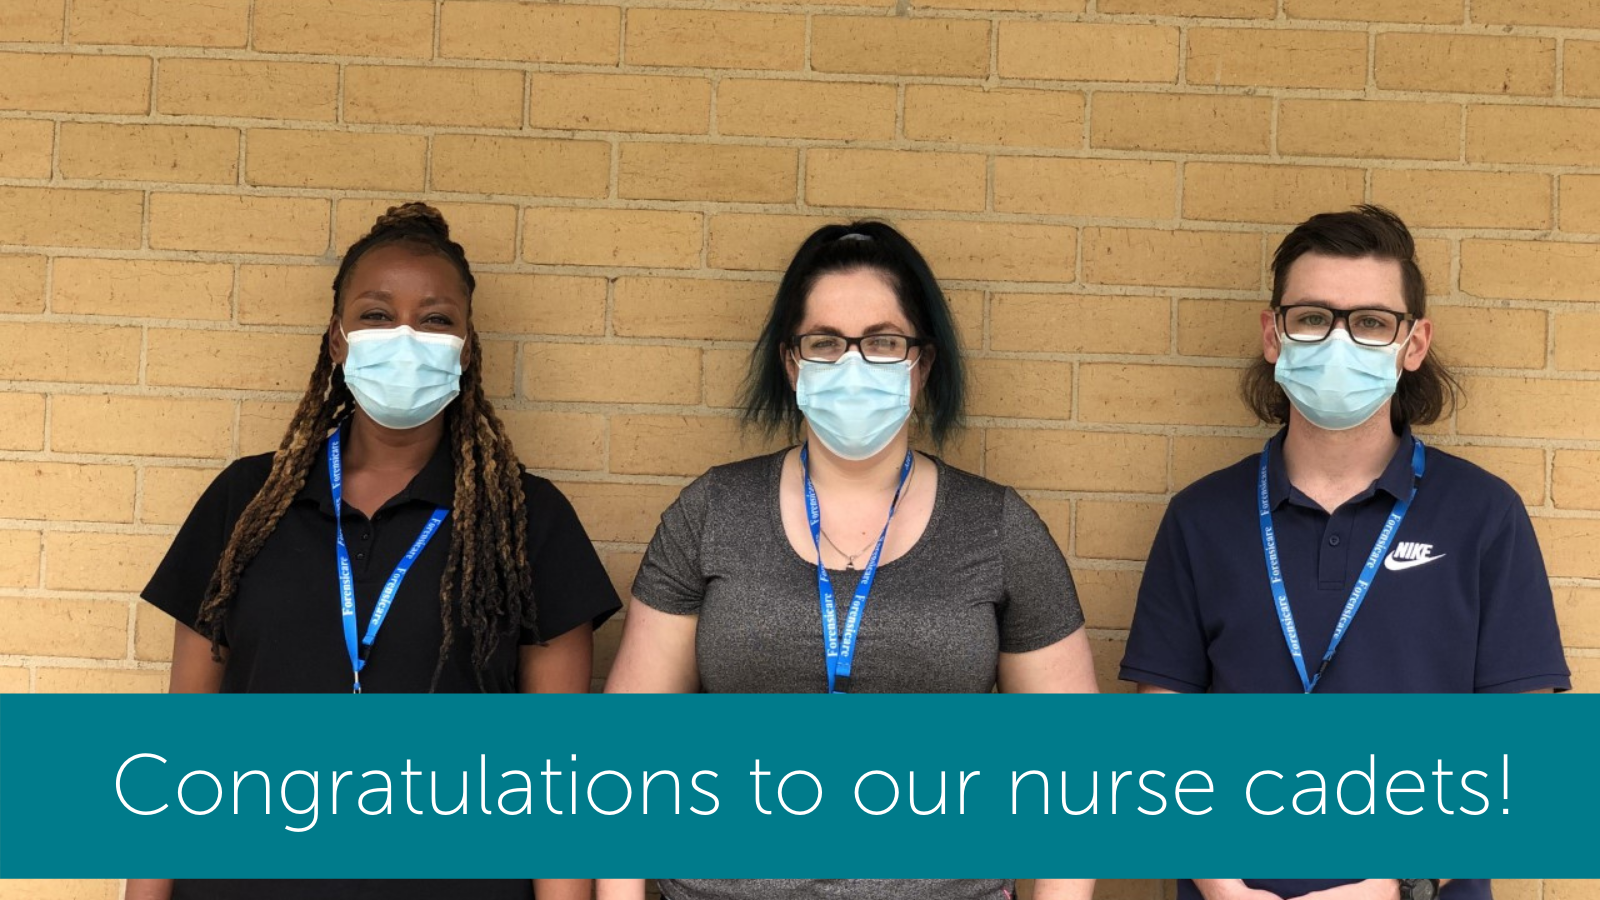 Congratulations to our mental health nurse cadets from our nursing cadetship